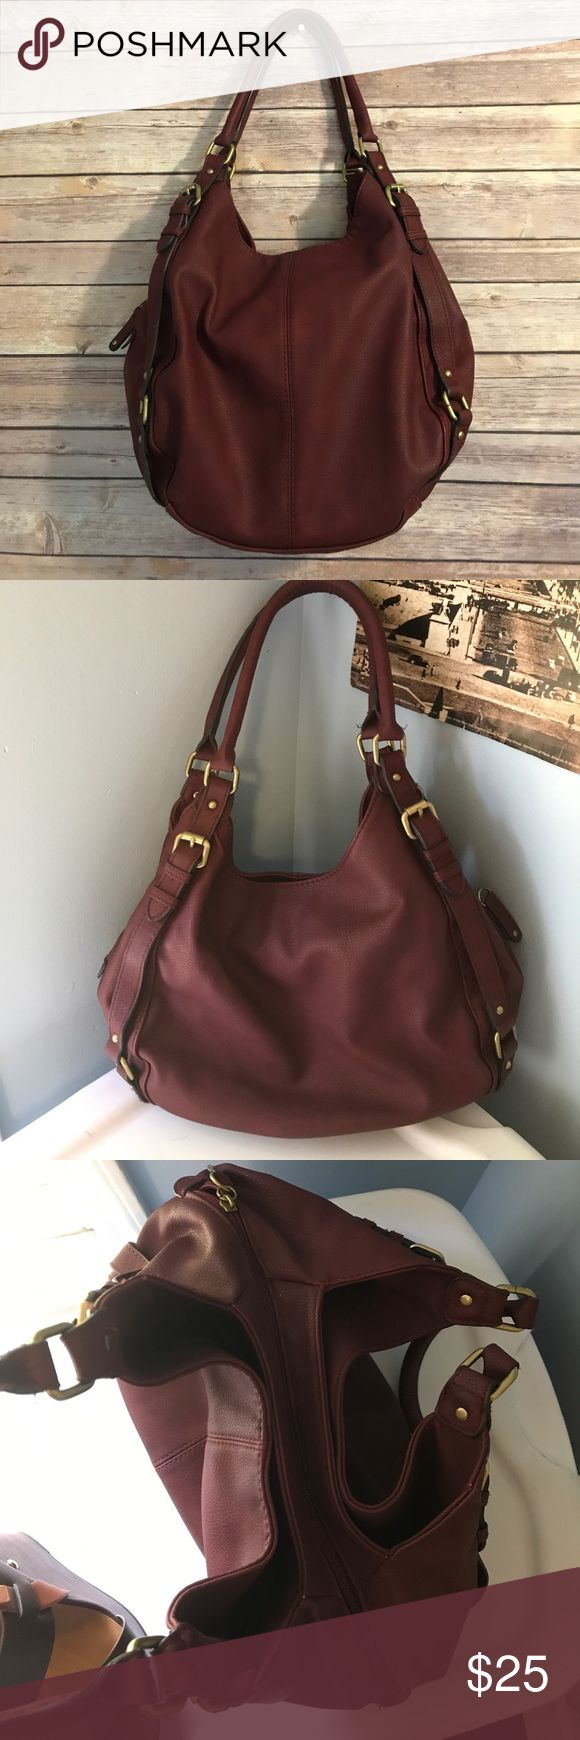 Burgundy faux leather shoulder bag gold hardware Burgundy faux leather shoulder bag gold hardware. Me Rona from Target. Center zip compartment has 2 slip/media pockets and 1 zip. 2 snap compartments on either side. Gold hardware. Thick rounded straps secured with hardware. New without tags. Brand new condition with no marks tears etc. Merona Bags